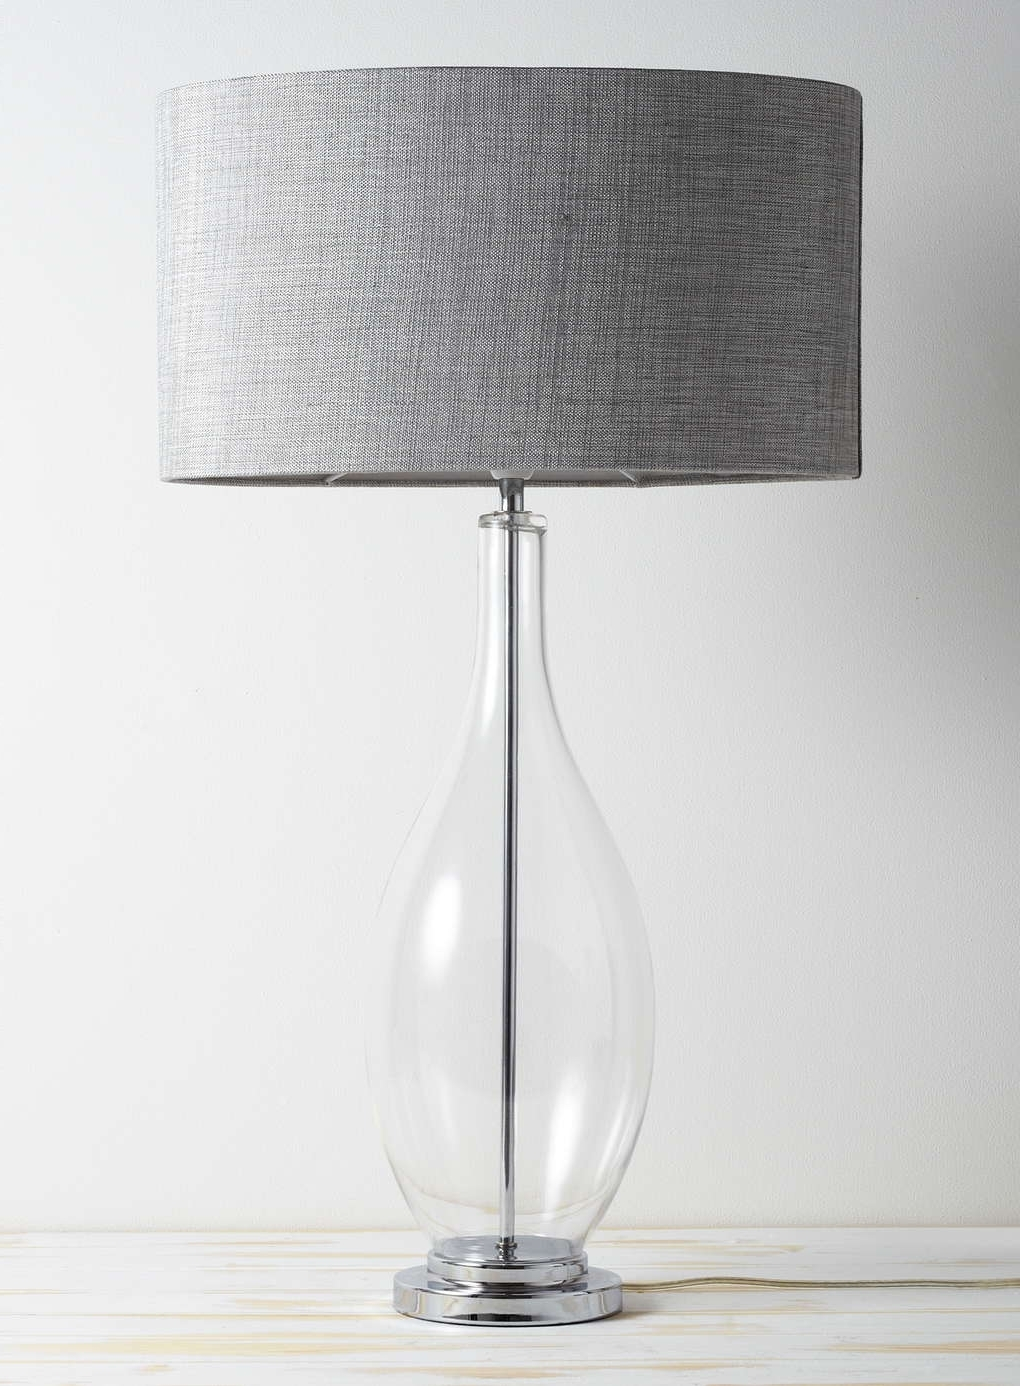 Fabulous Tall Glass Table Lamp 6 Astonishing Lamps U Design Pretty Throughout Most Current Tall Table Lamps For Living Room (View 7 of 15)